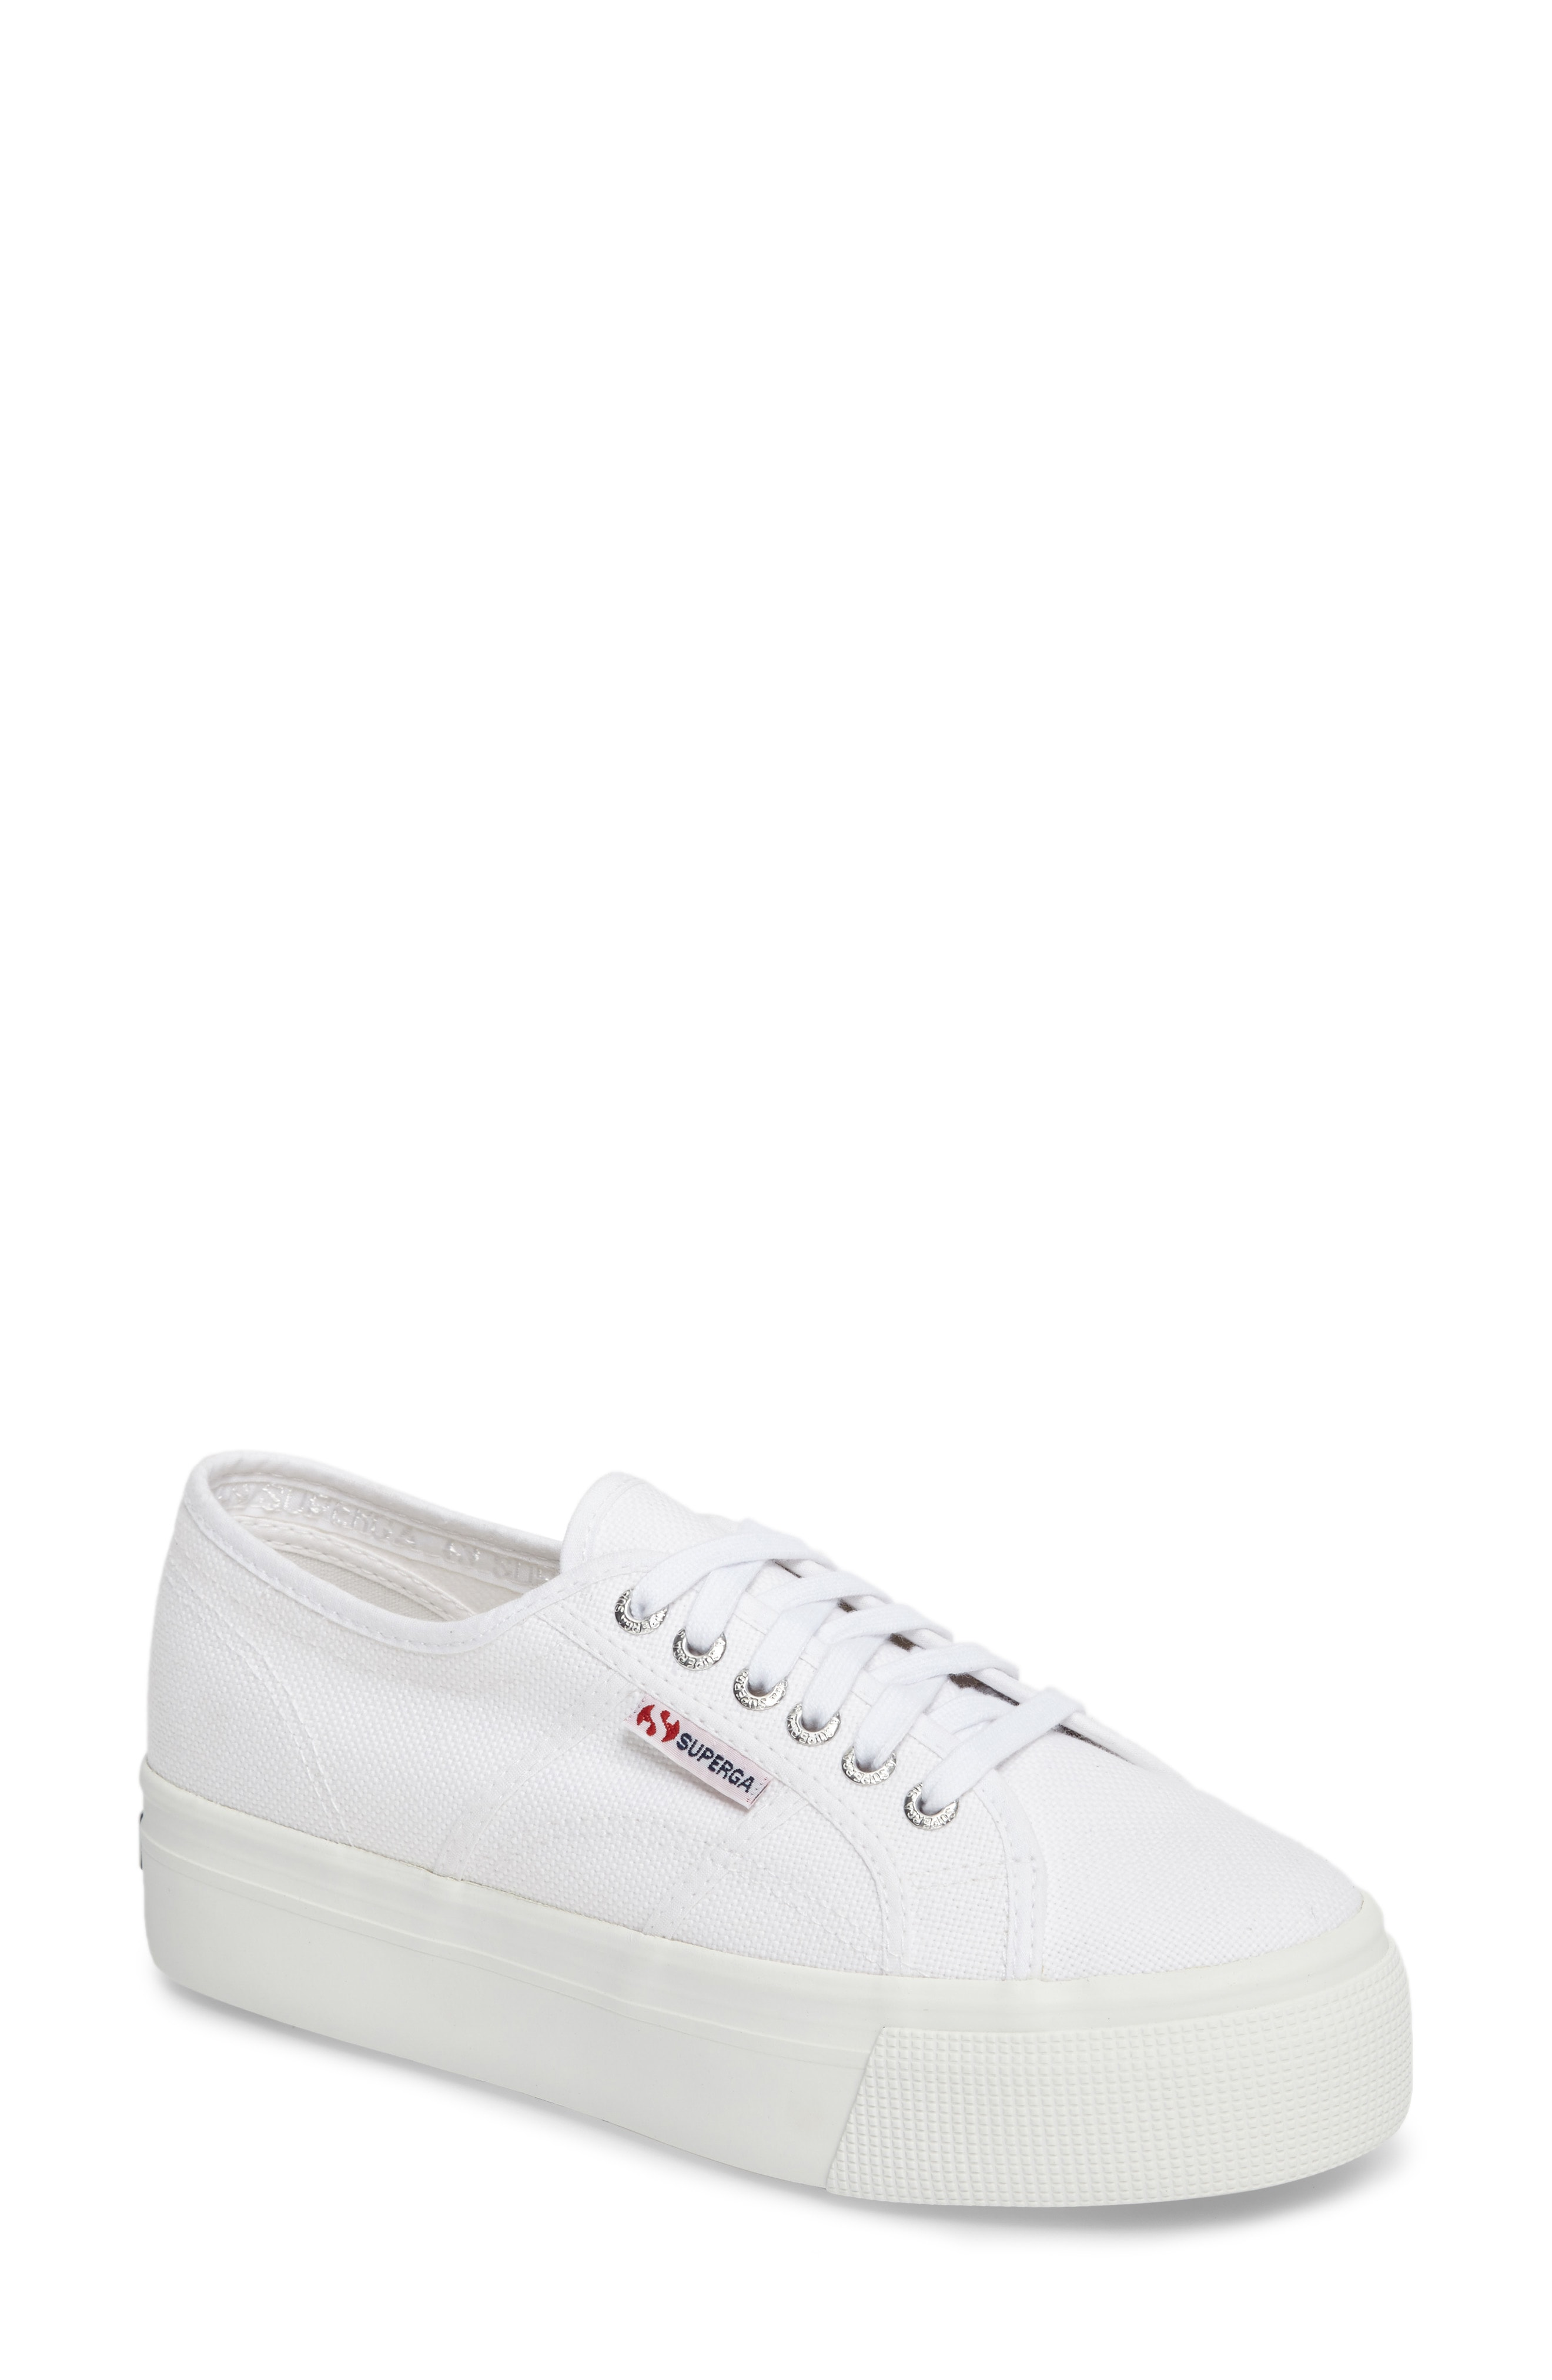 Superga Shoes & Sneakers | Nordstrom